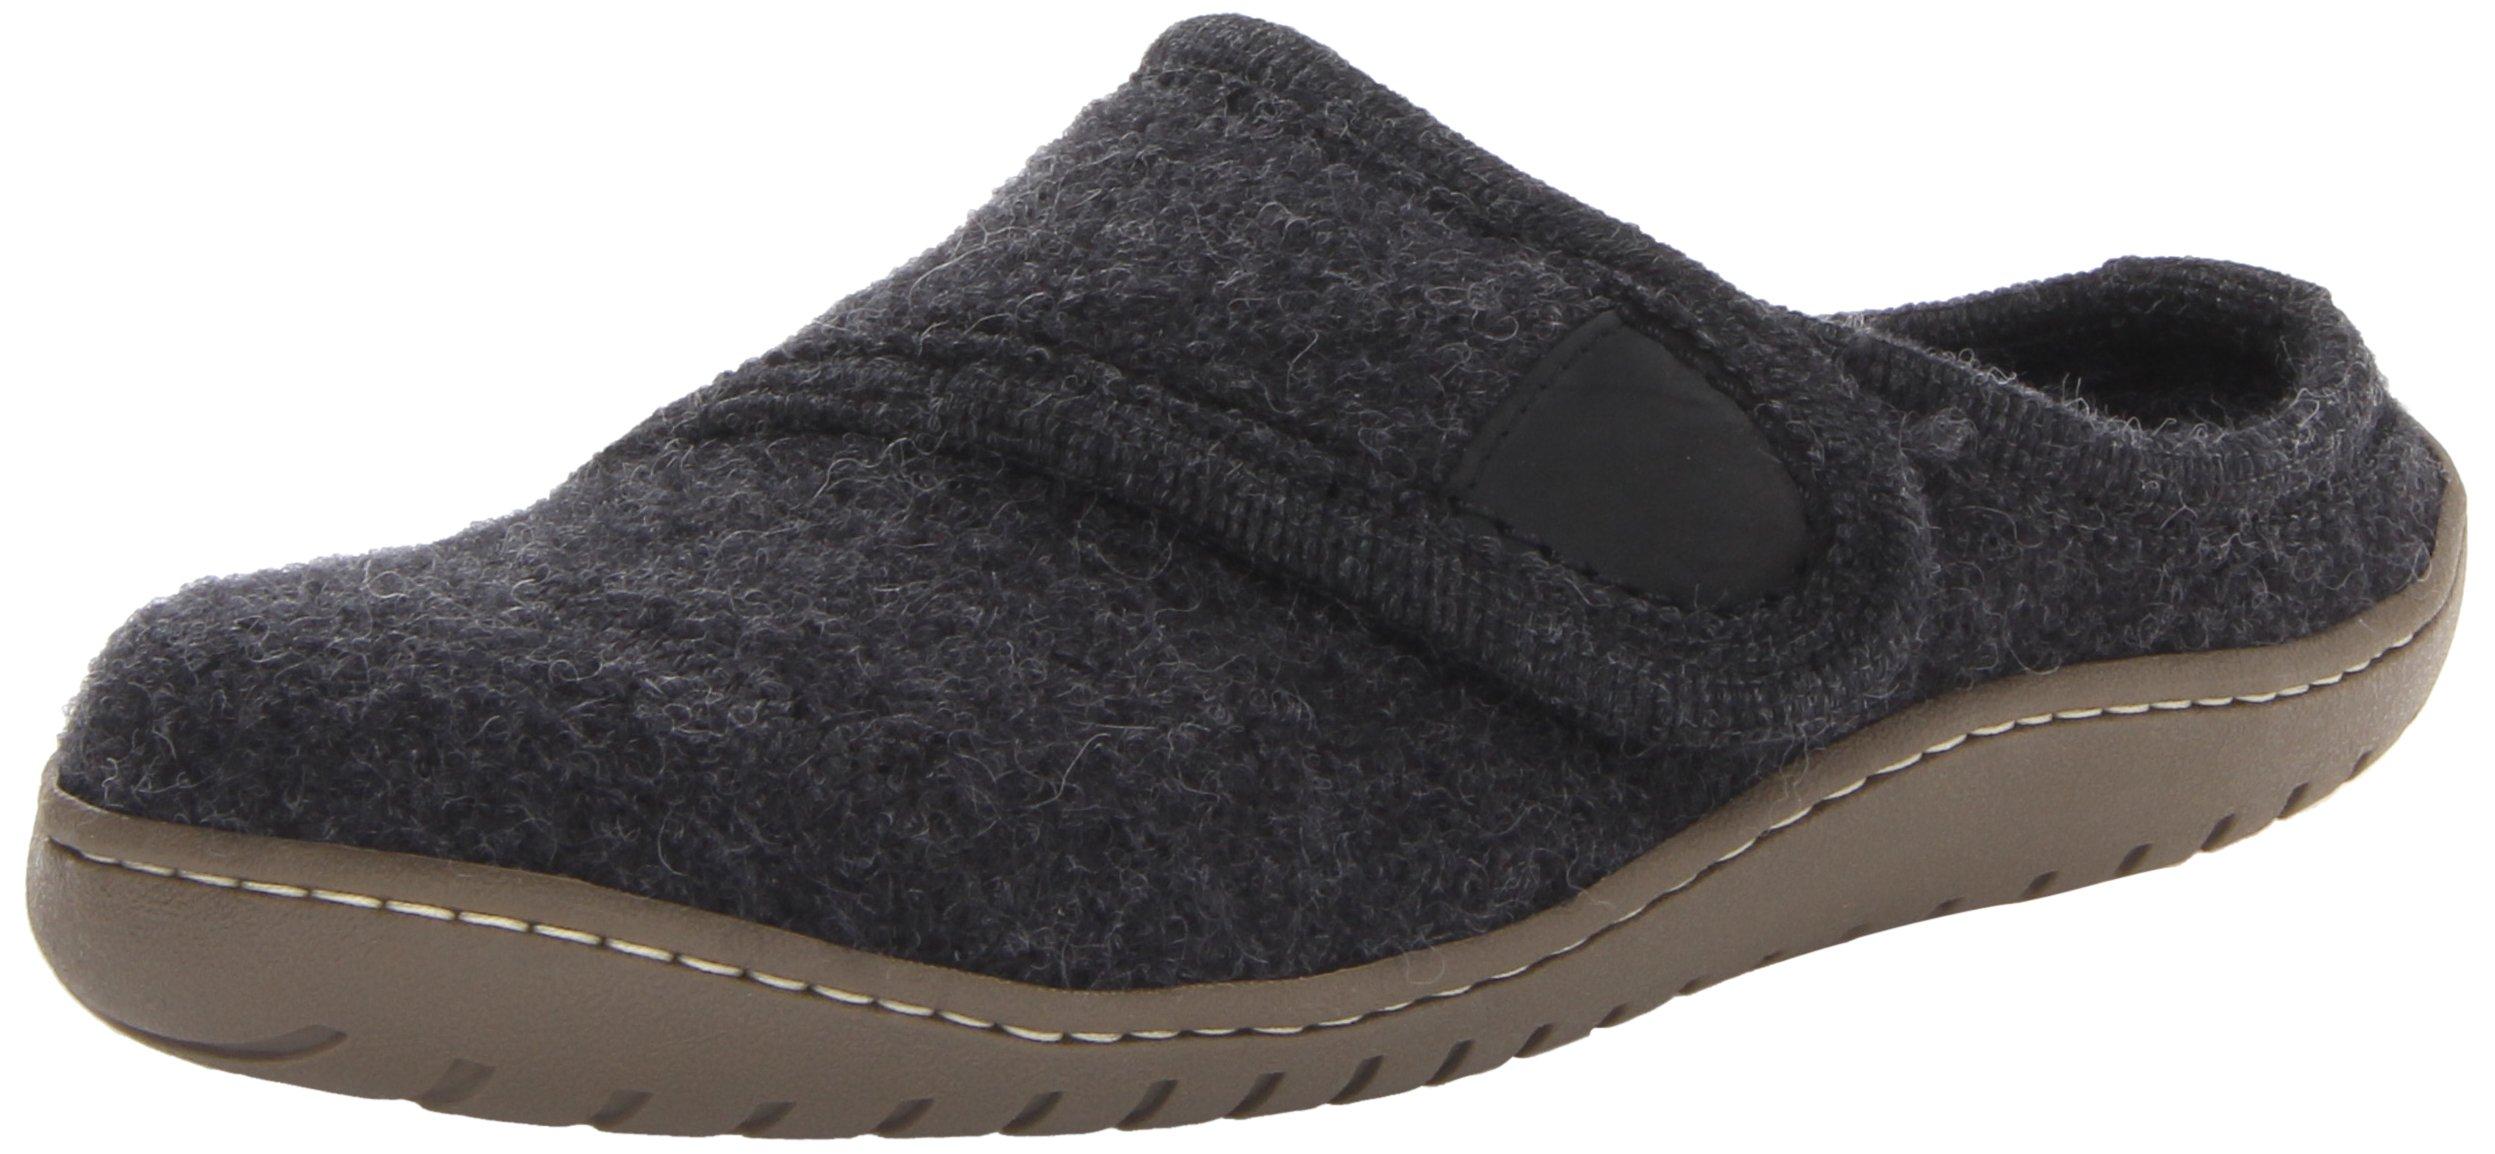 Haflinger Women's AT Storm Flat,Charcoal,38 EU/7 M US